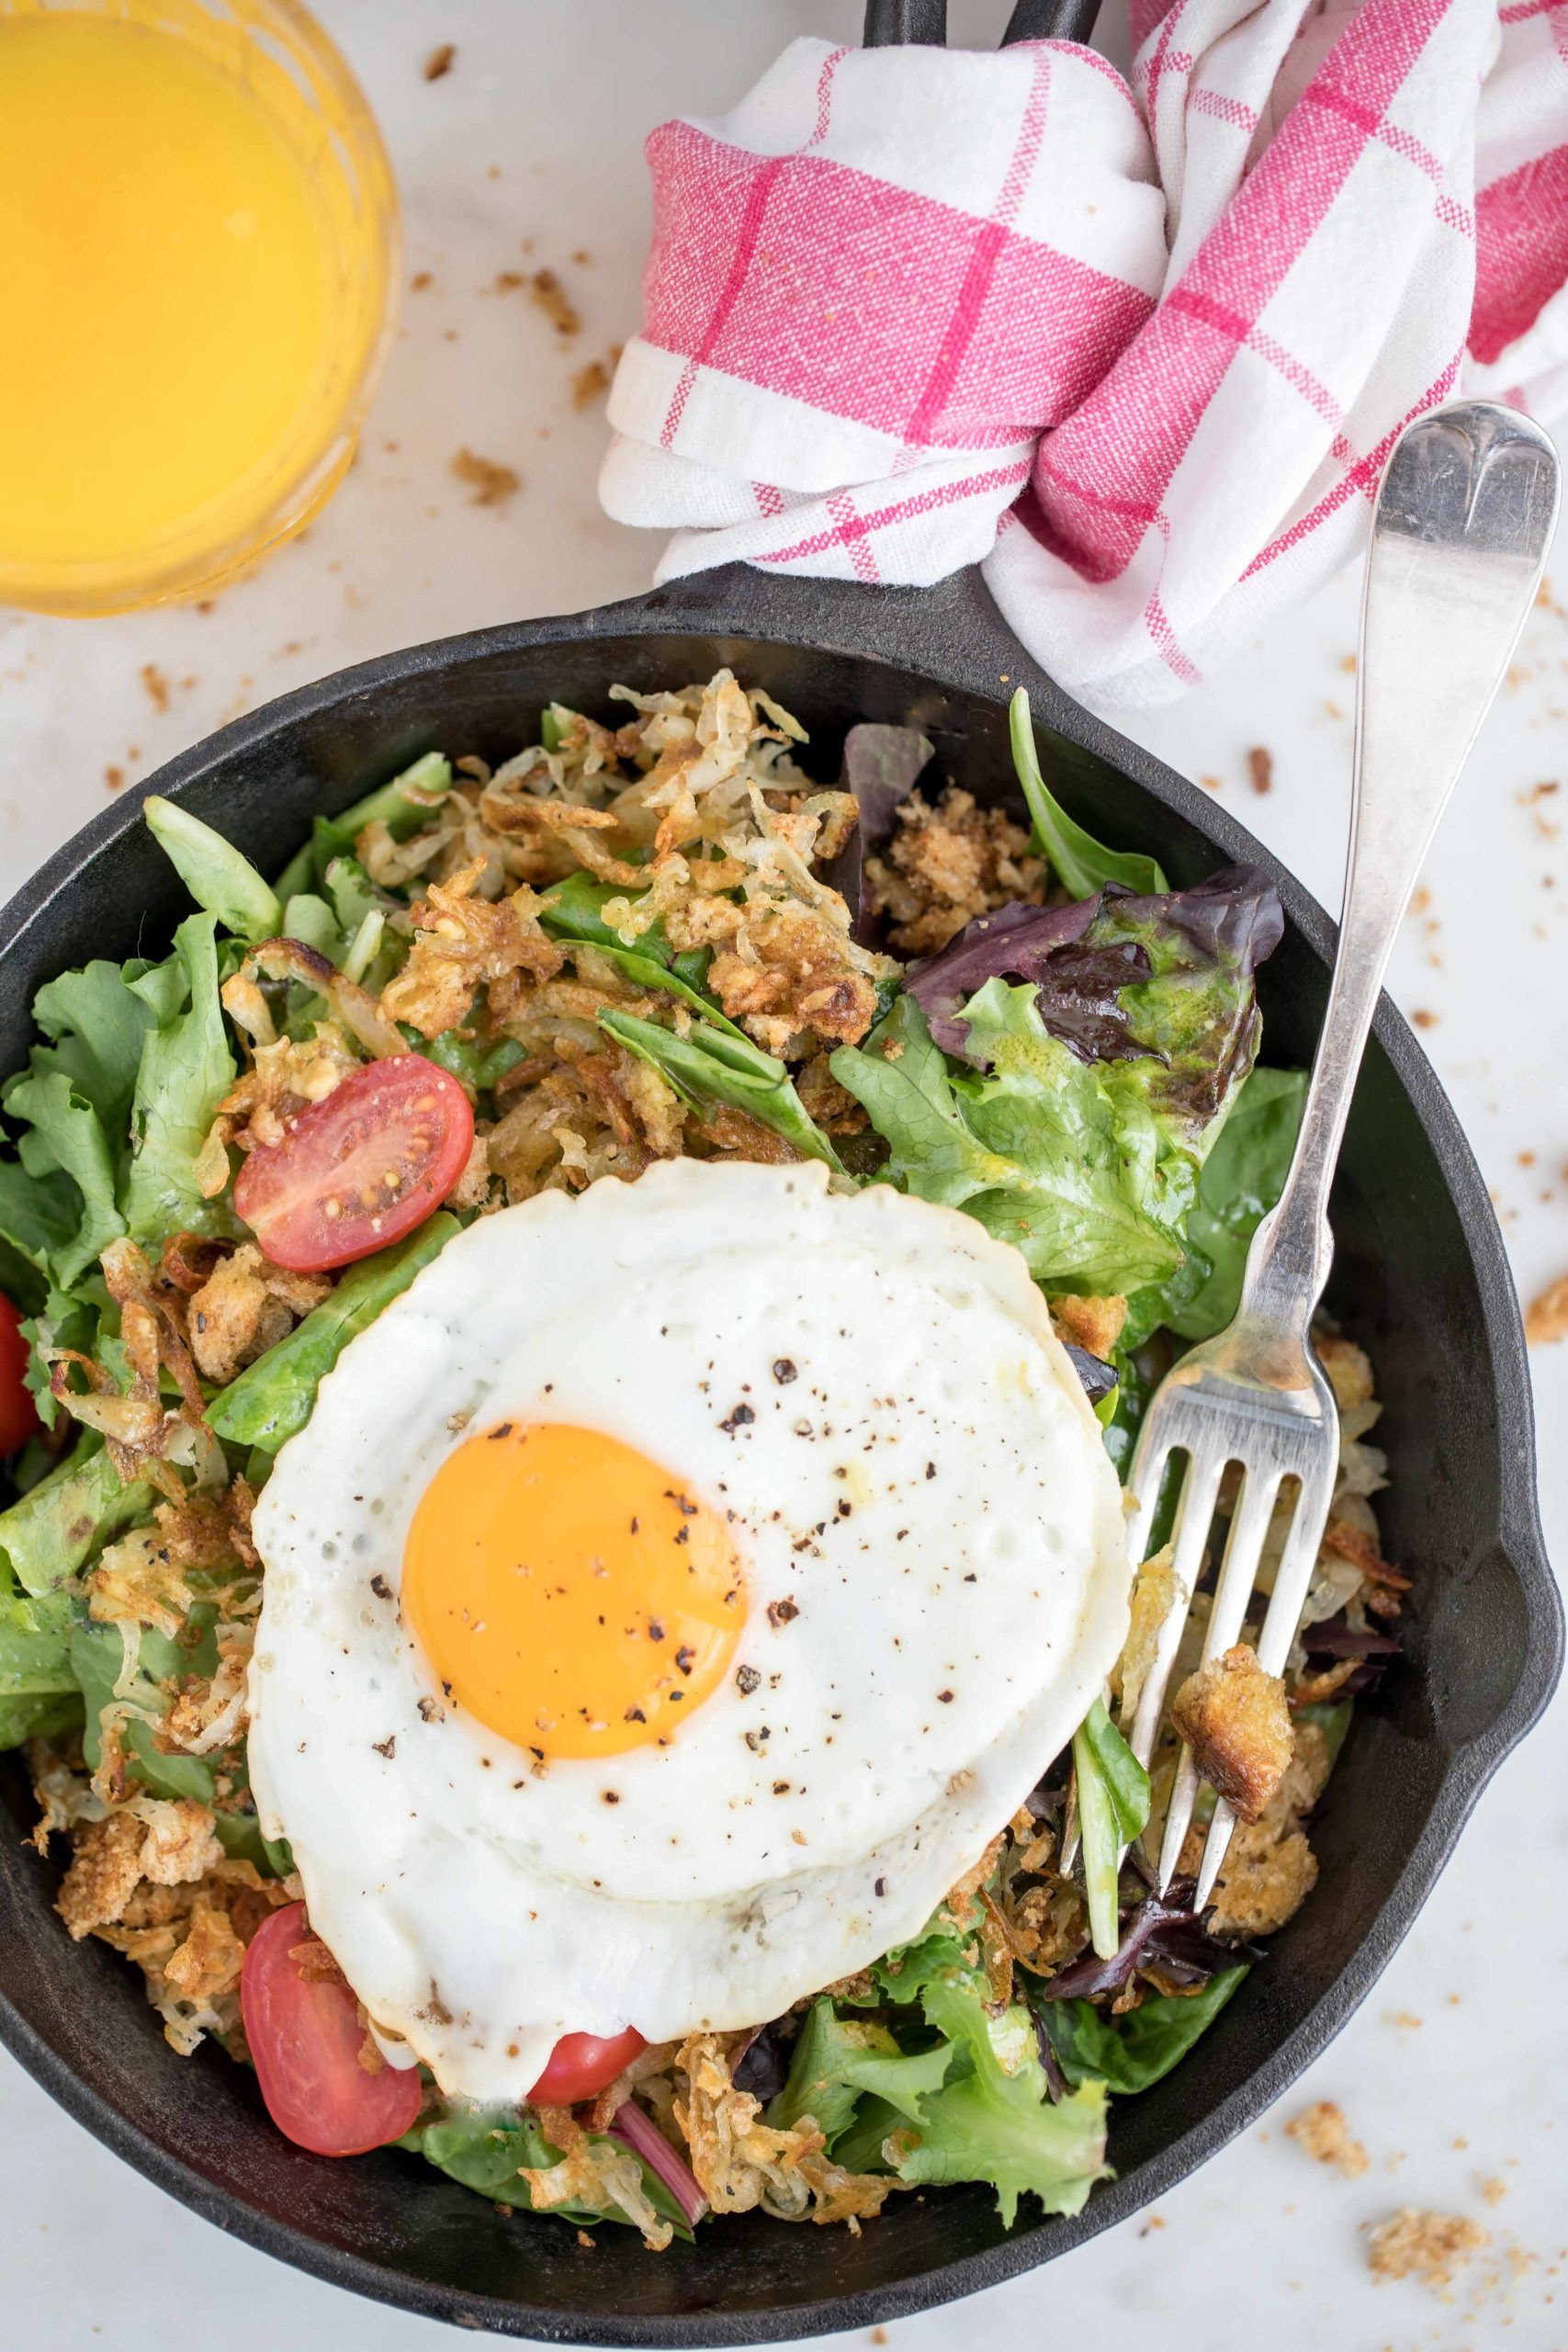 Breakfast Salad is a hearty mix of greens, hash browns, croutons, tomatoes and a fried egg, all tossed in a light citrus vinaigrette